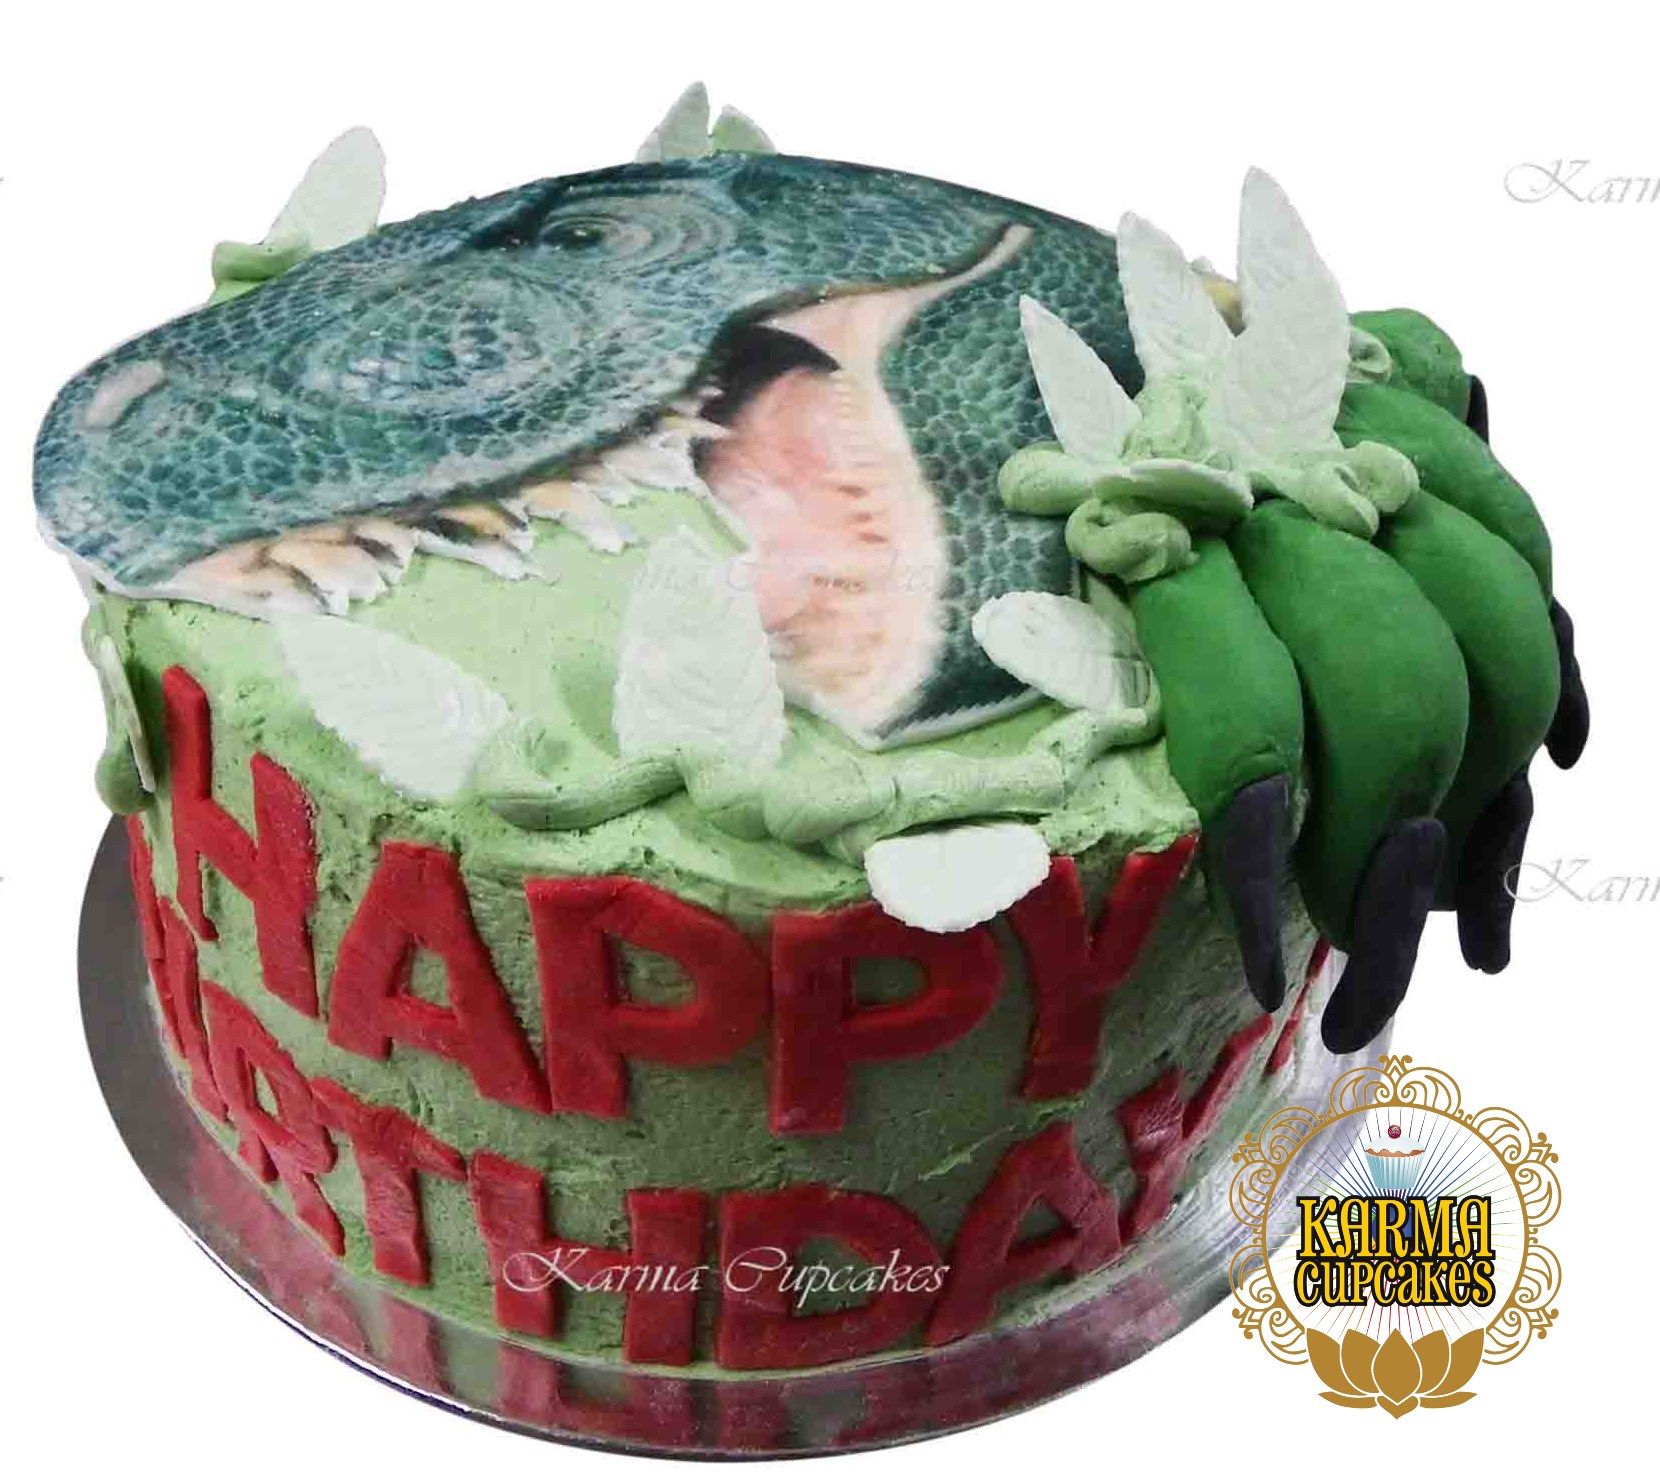 Surprising Dinosaur Birthday Cake With 3D Foot And Edible Leaves Funny Birthday Cards Online Inifodamsfinfo